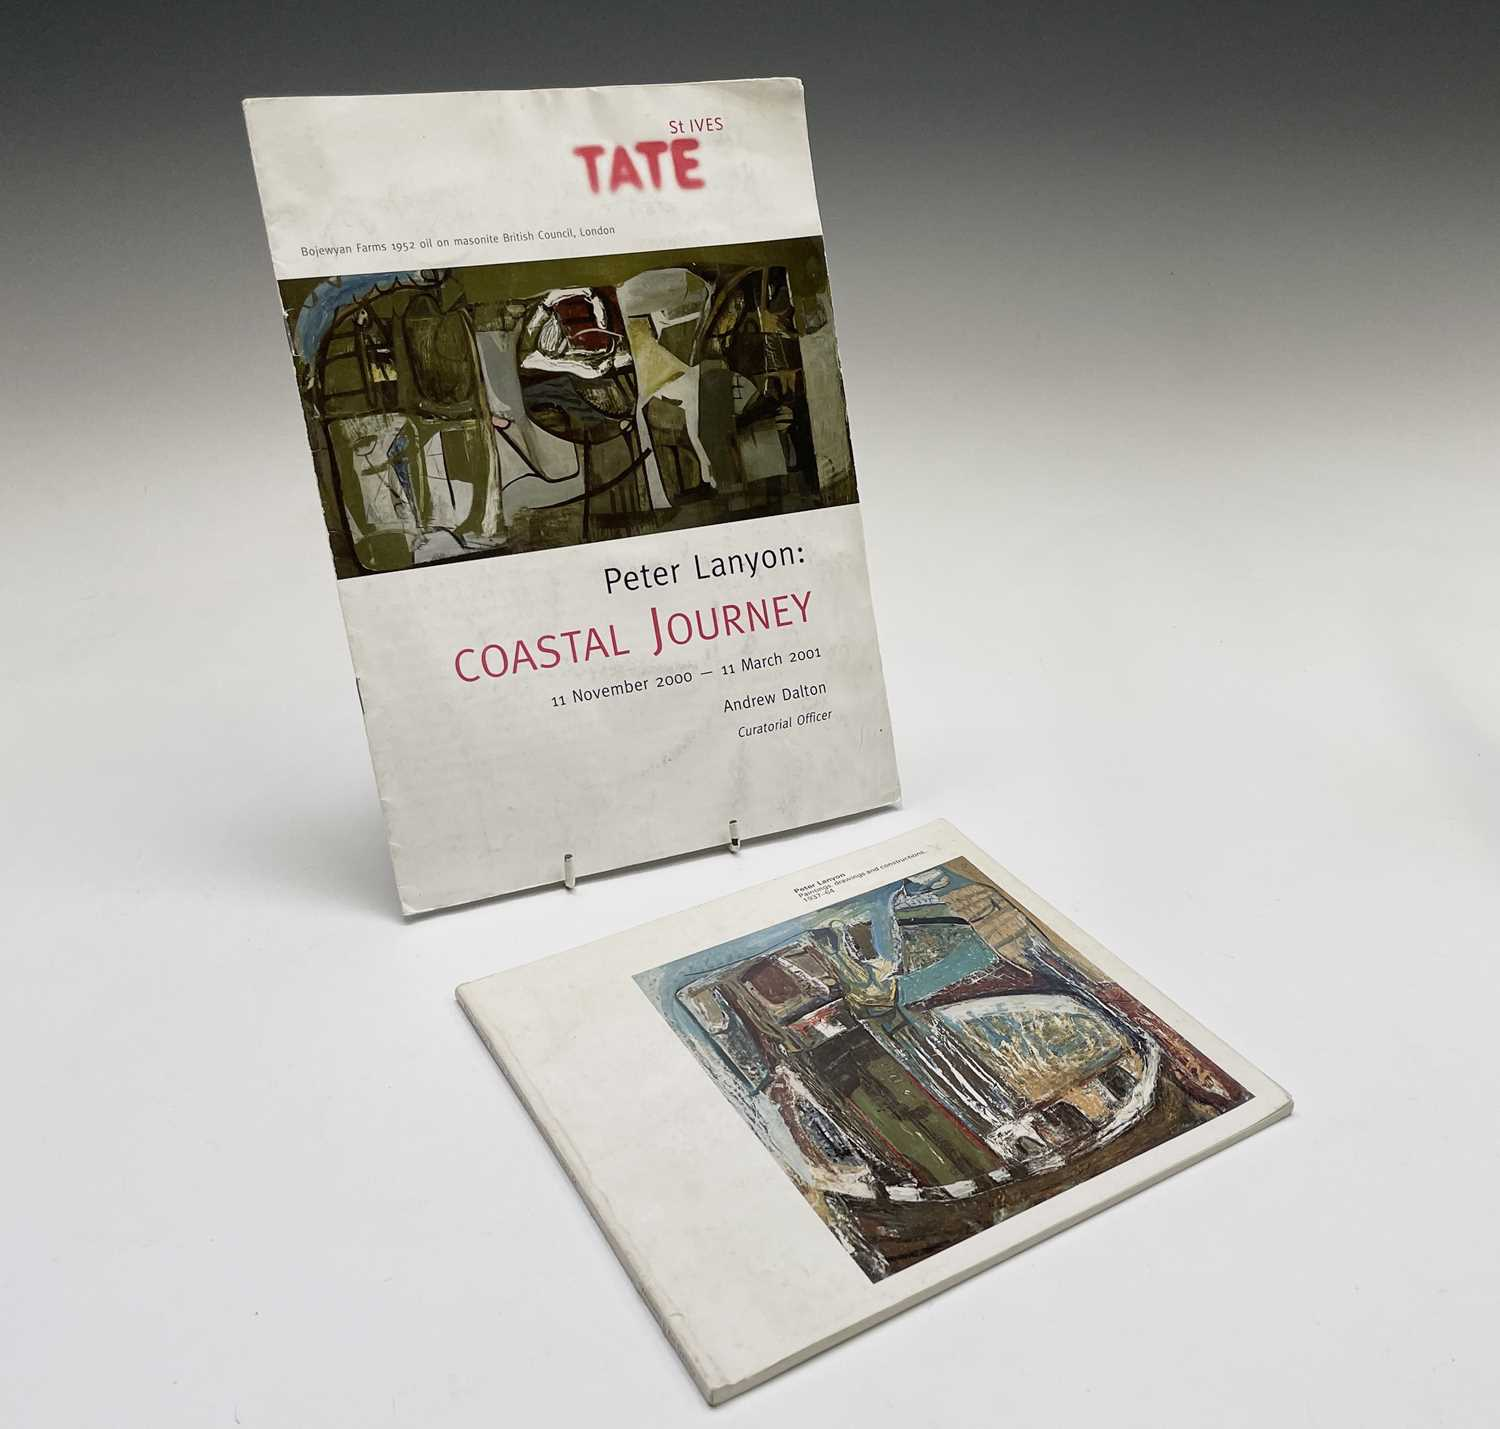 'Peter Lanyon: Paintings, drawings and constructions, 1937-64' catalogue, together with a Tate